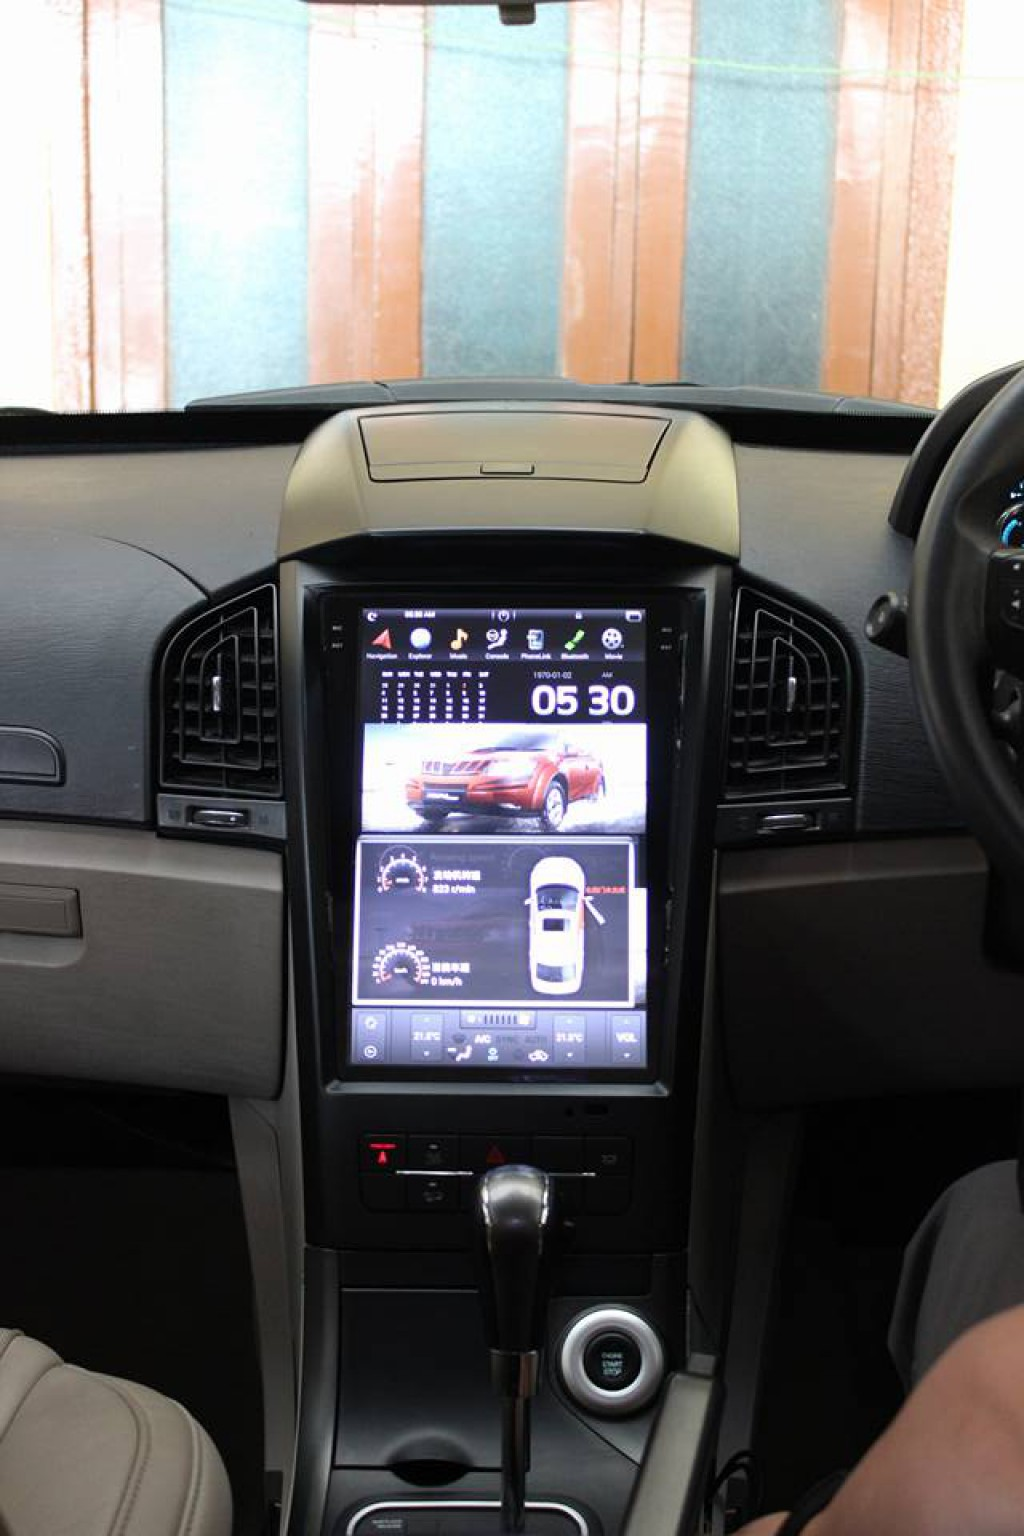 Mahindra-XUV-500-with-Tesla-inspired-infotainment-system-2